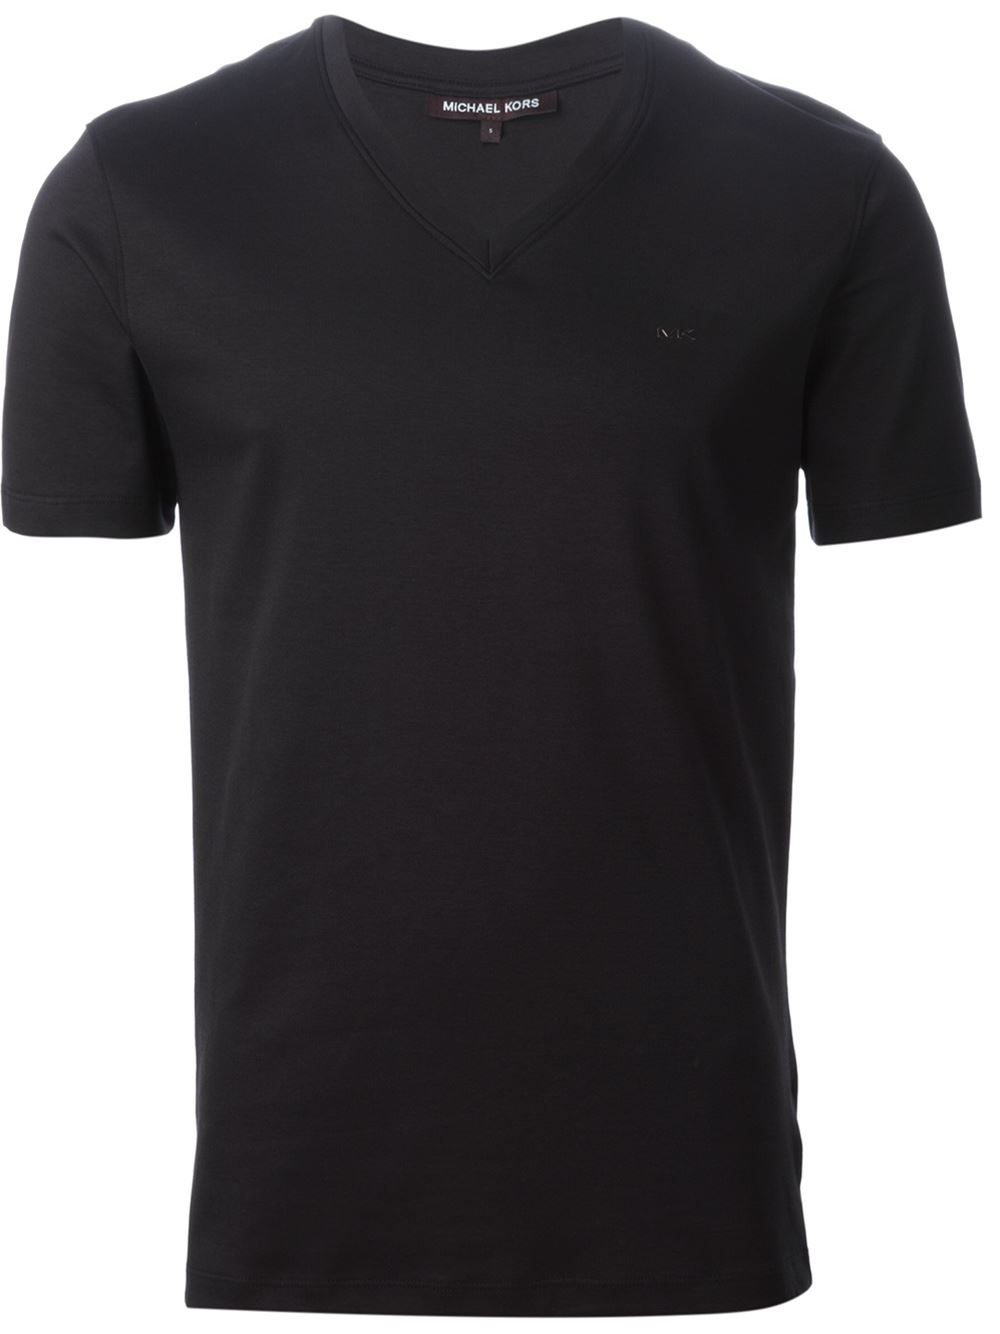 Michael kors V-Neck T-Shirt in Black for Men | Lyst